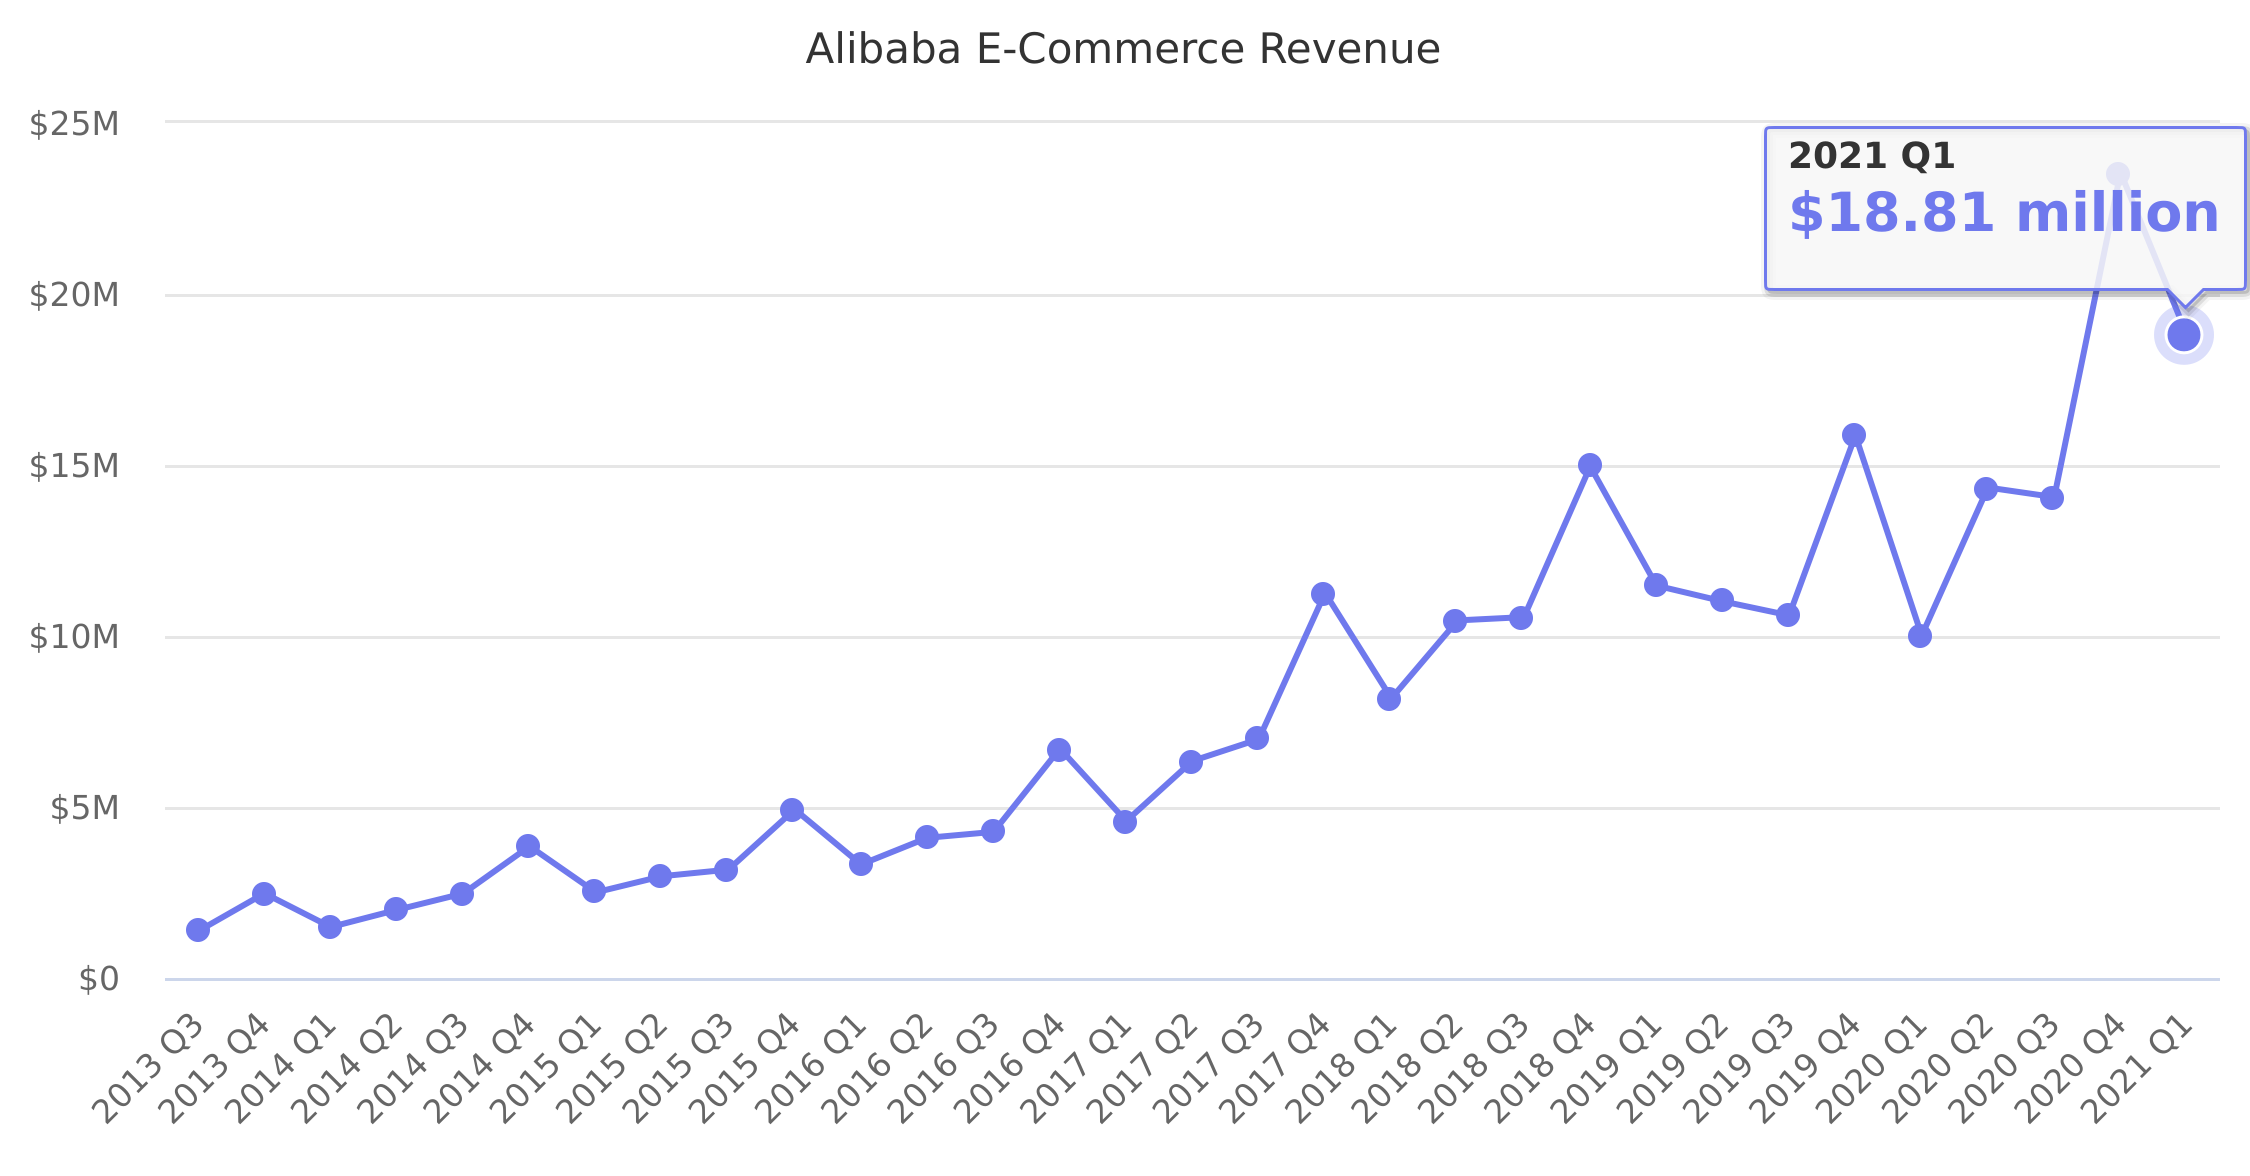 Alibaba E-Commerce Revenue 2013-2019